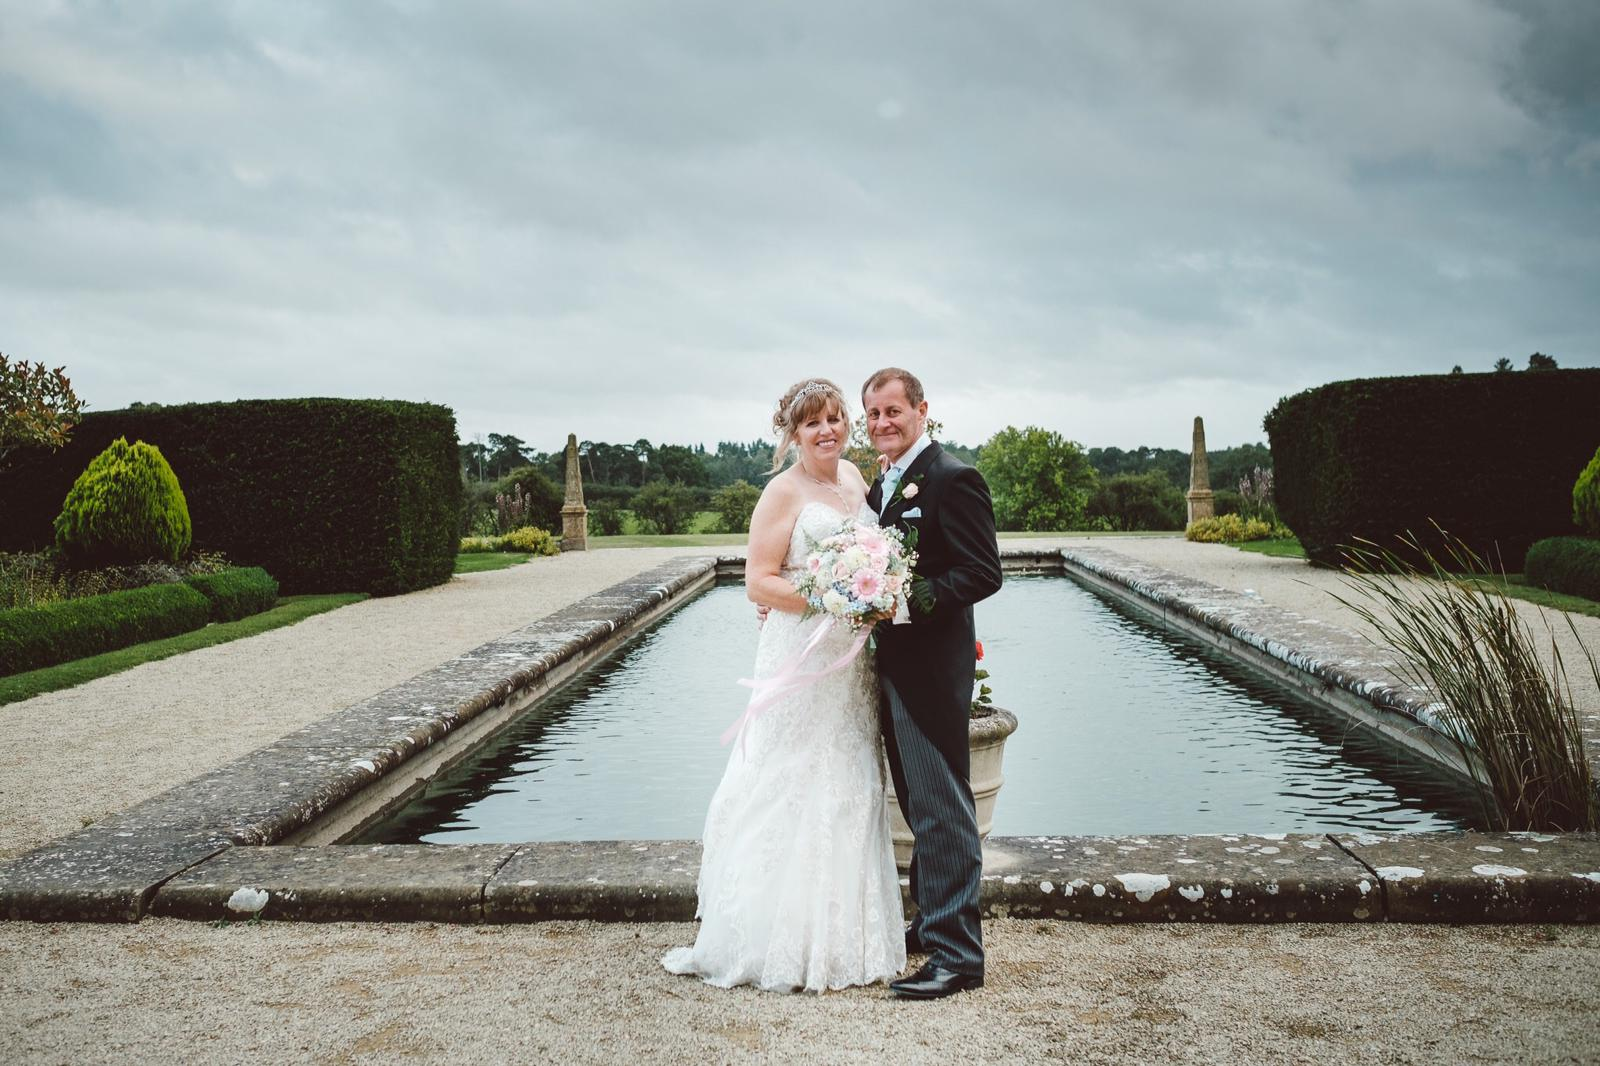 Mr & Mrs by the pond